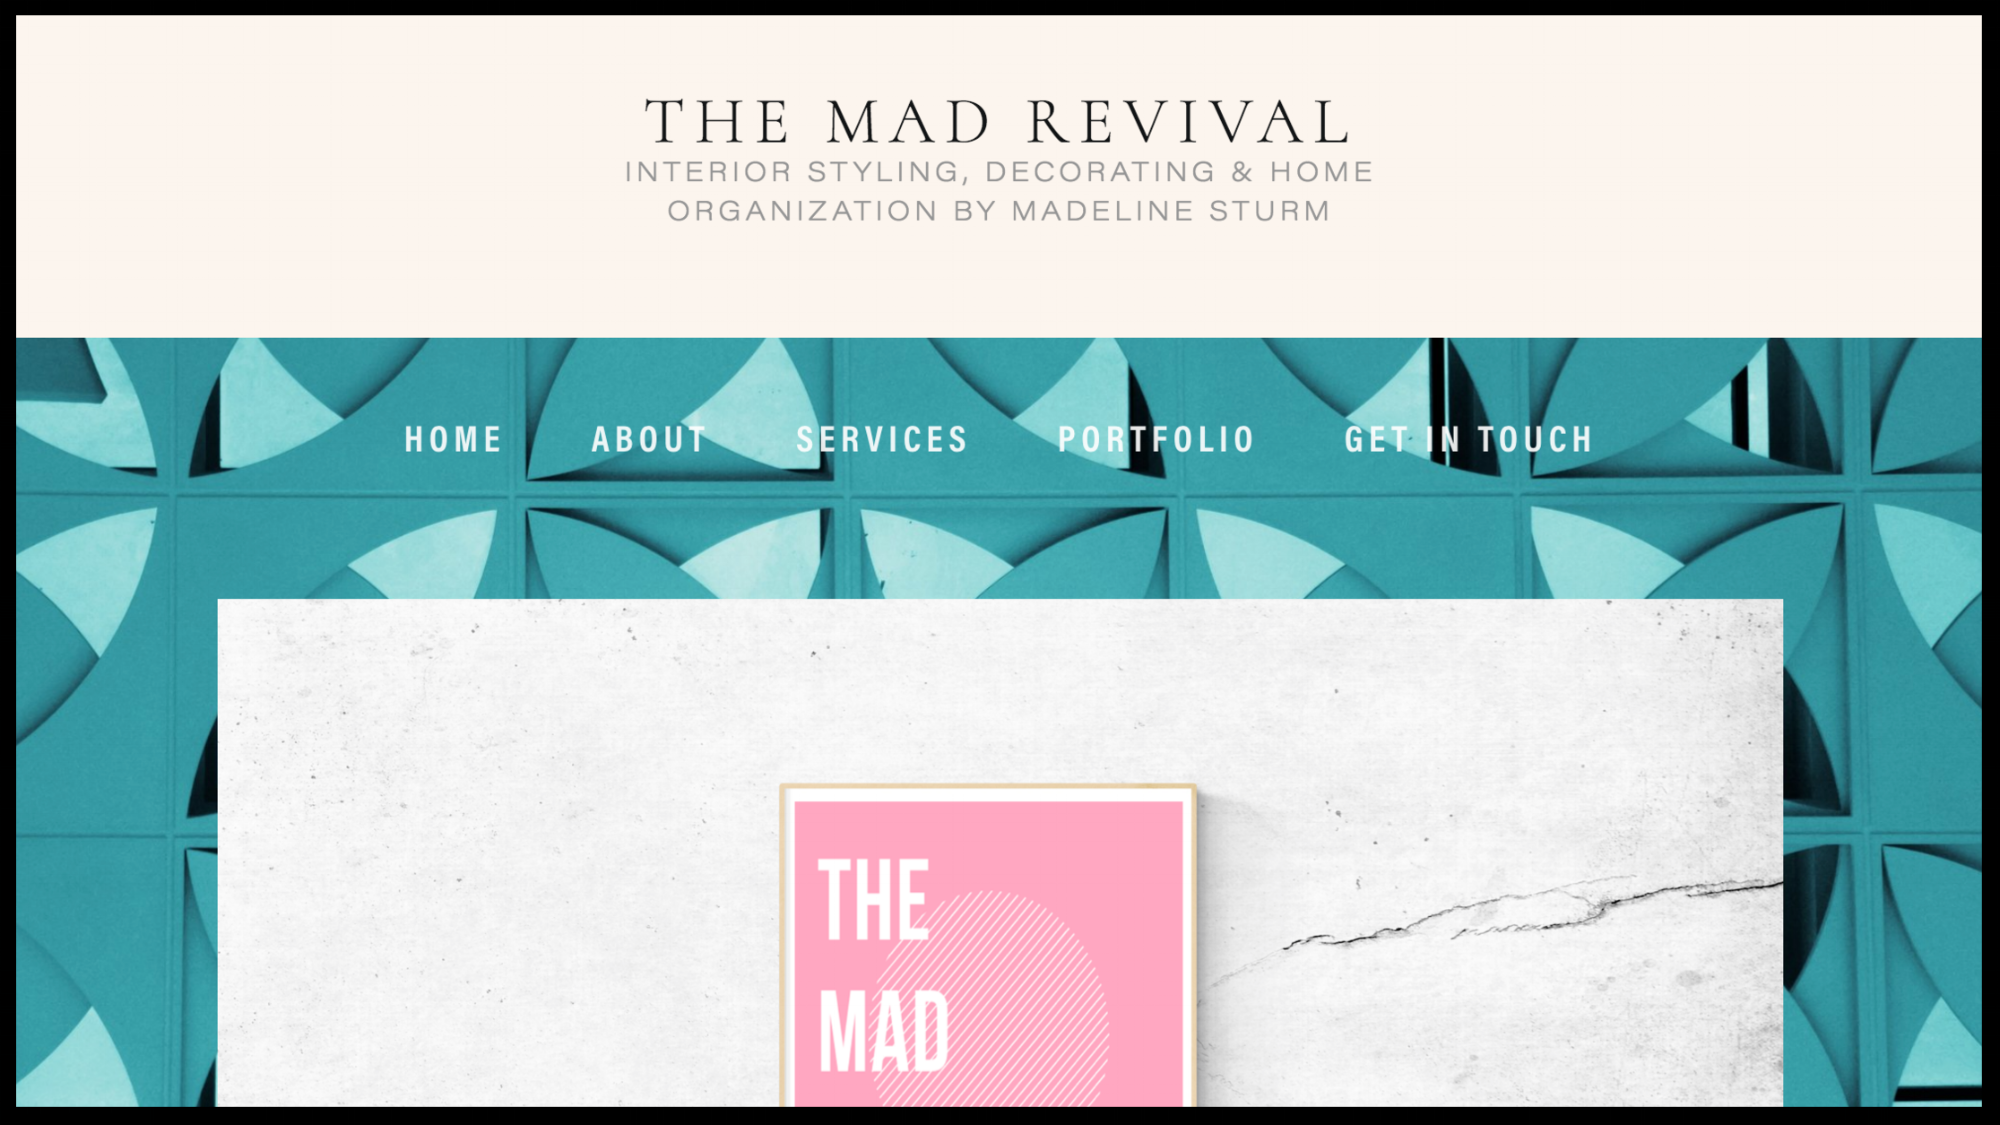 The Mad Revival - What did Wolf Flow do?Design overhaul - rebuilt their website and added a mobile friendly website featureWrote search engine optimized contentCreated successful social media profiles to engage with past and potential clients